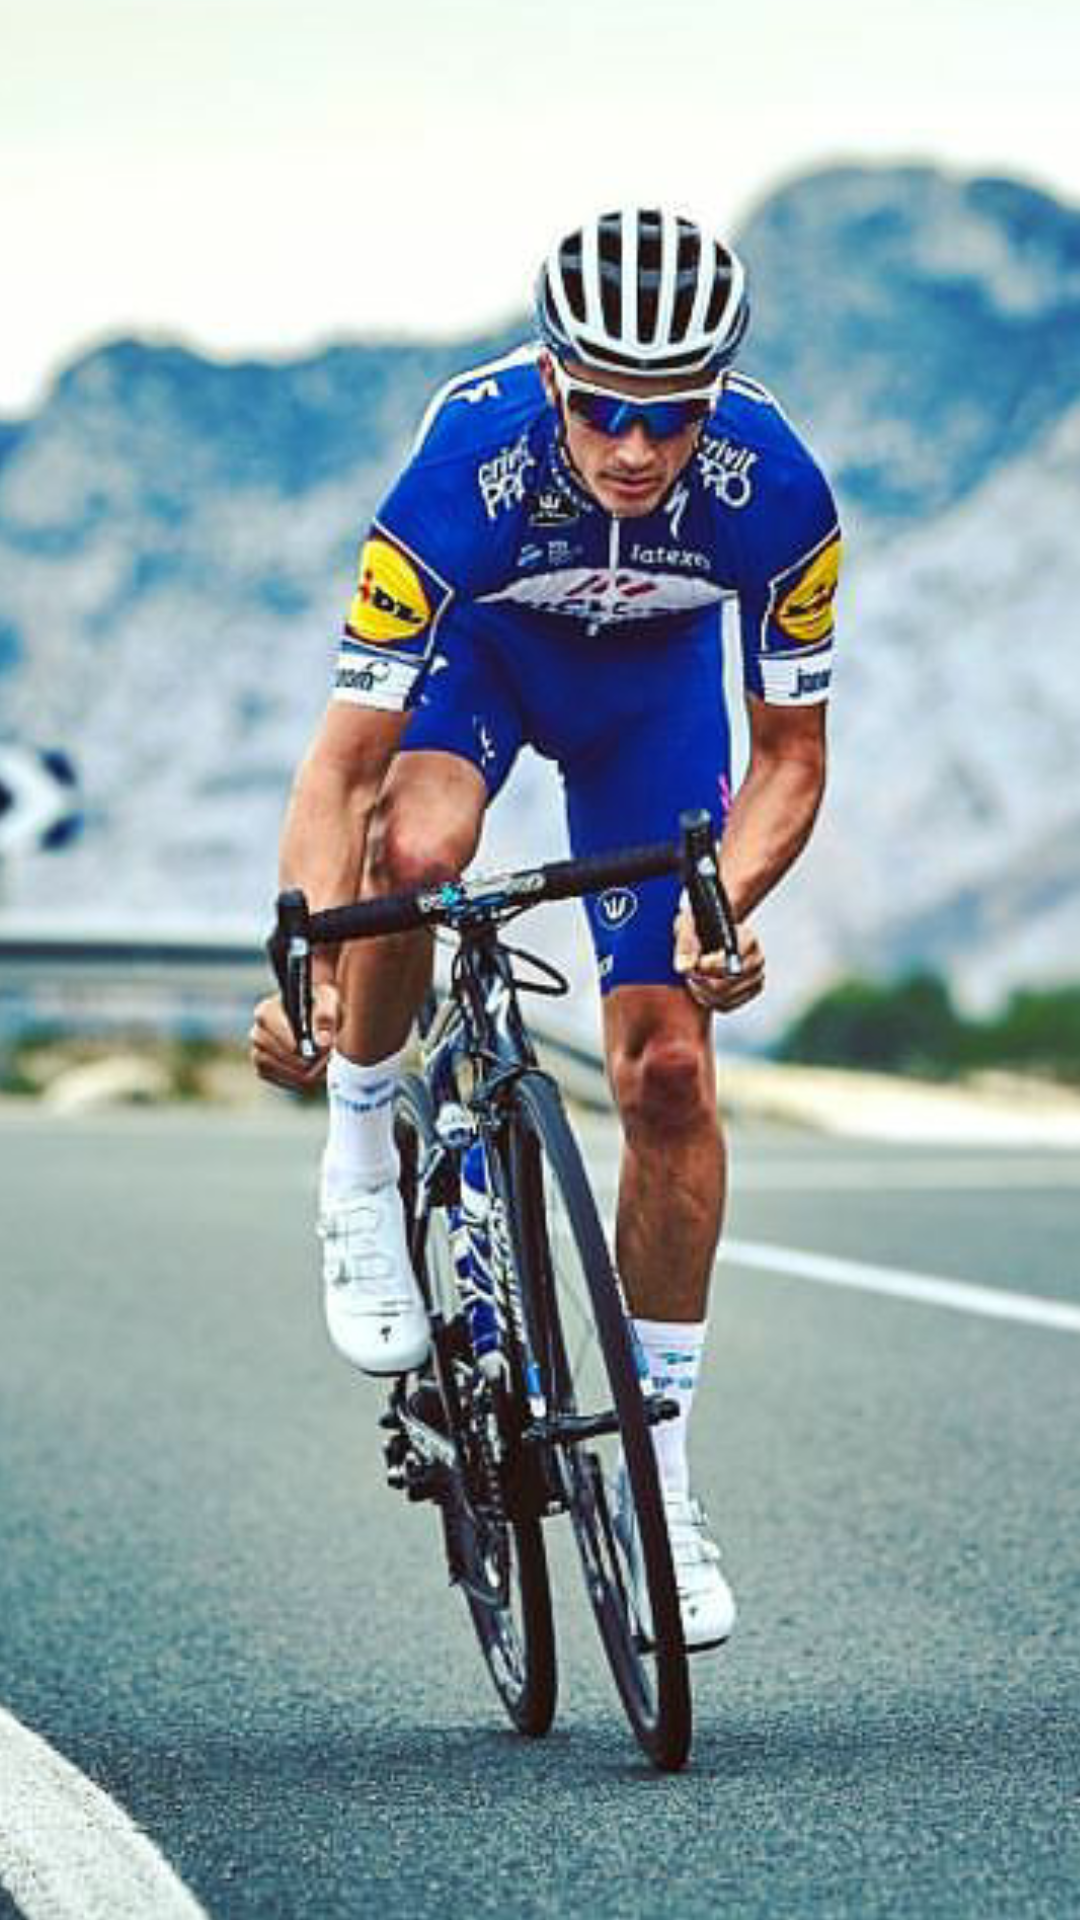 Julian Alaphilippe Cycling Outfit Bicycle Sport Professional Cycling